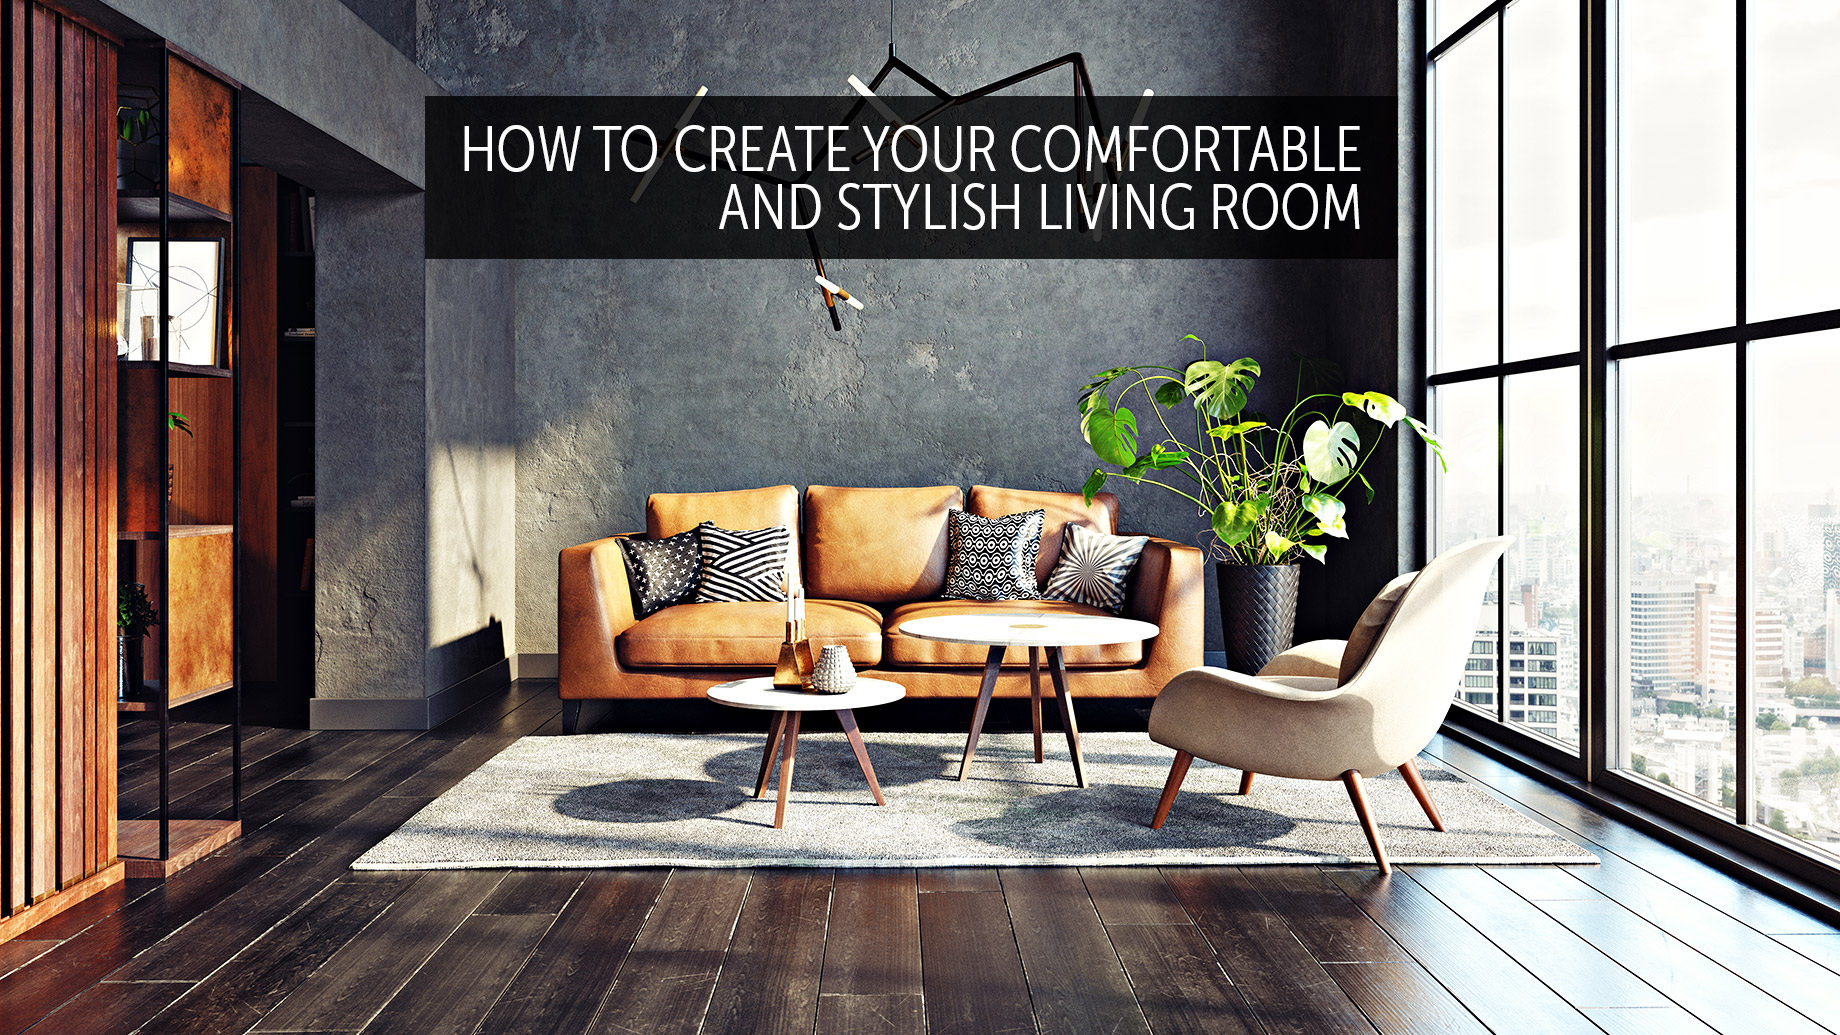 How To Create Your Comfortable And Stylish Living Room